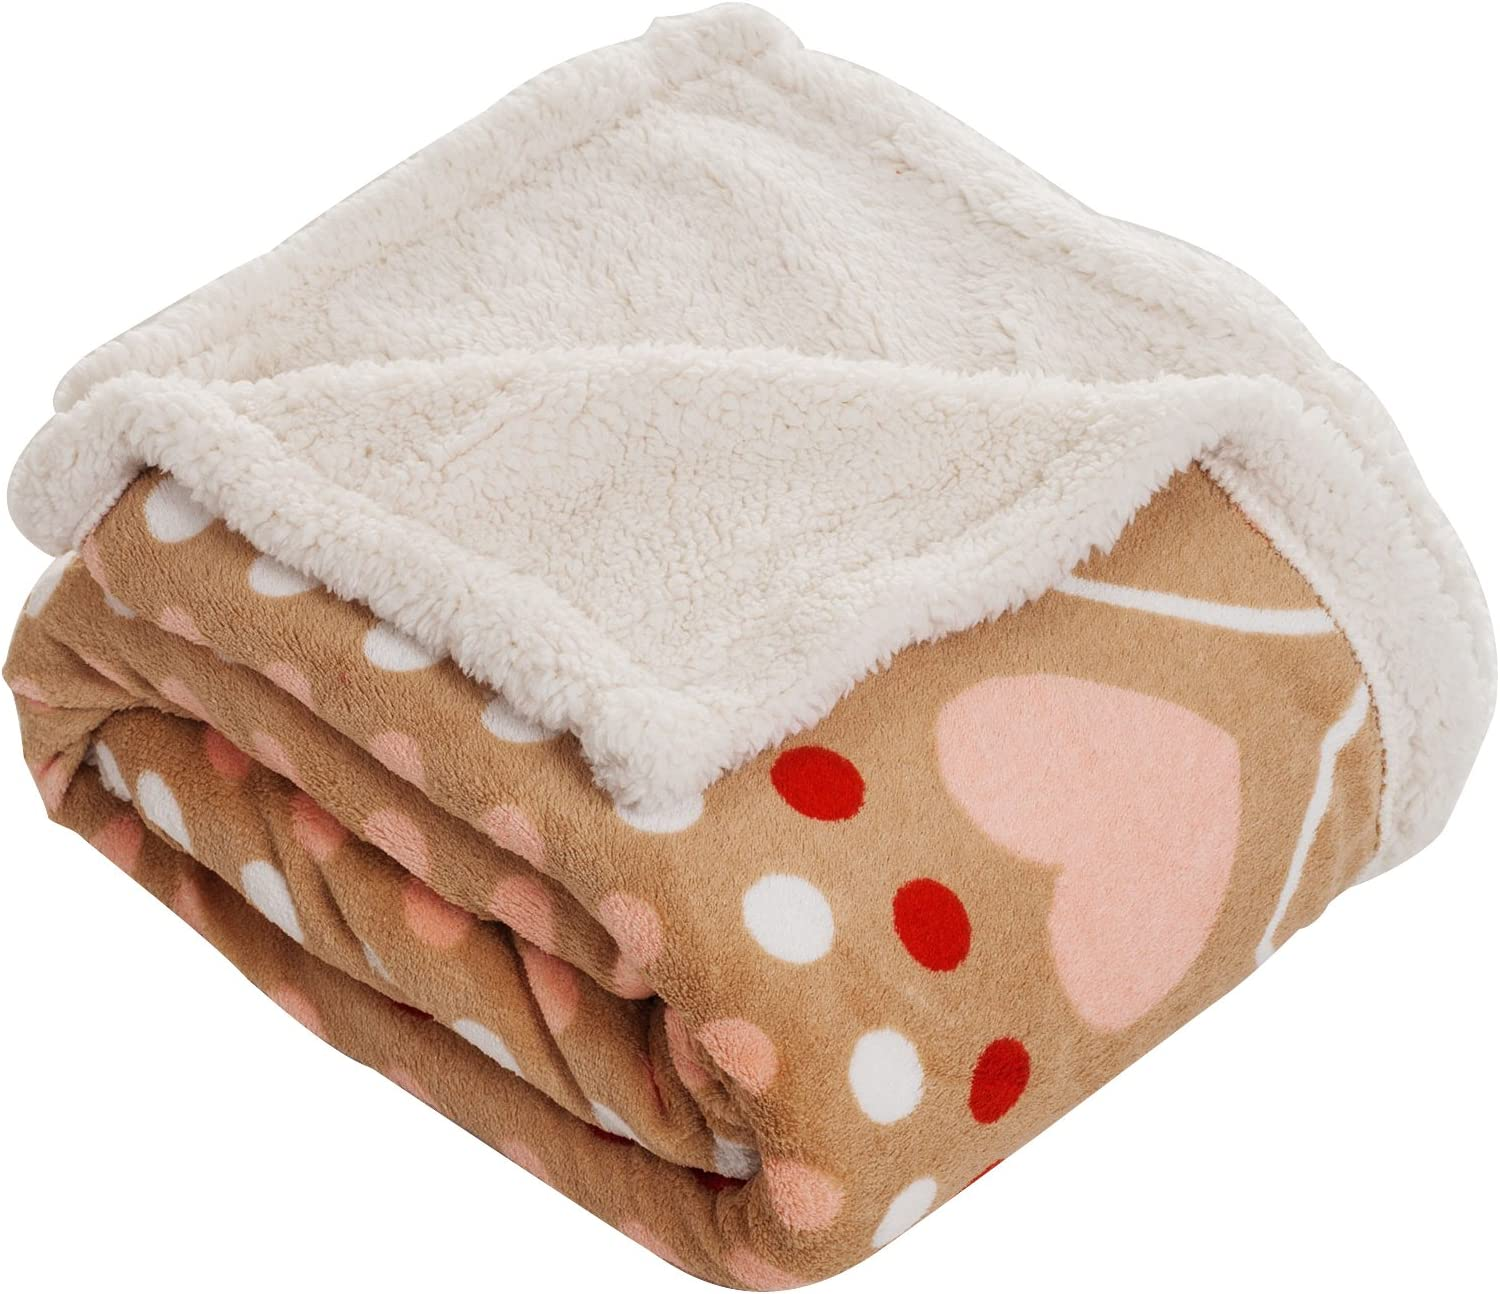 Lavish Home Throw Blanket, Fleece/Sherpa, Red Hearts